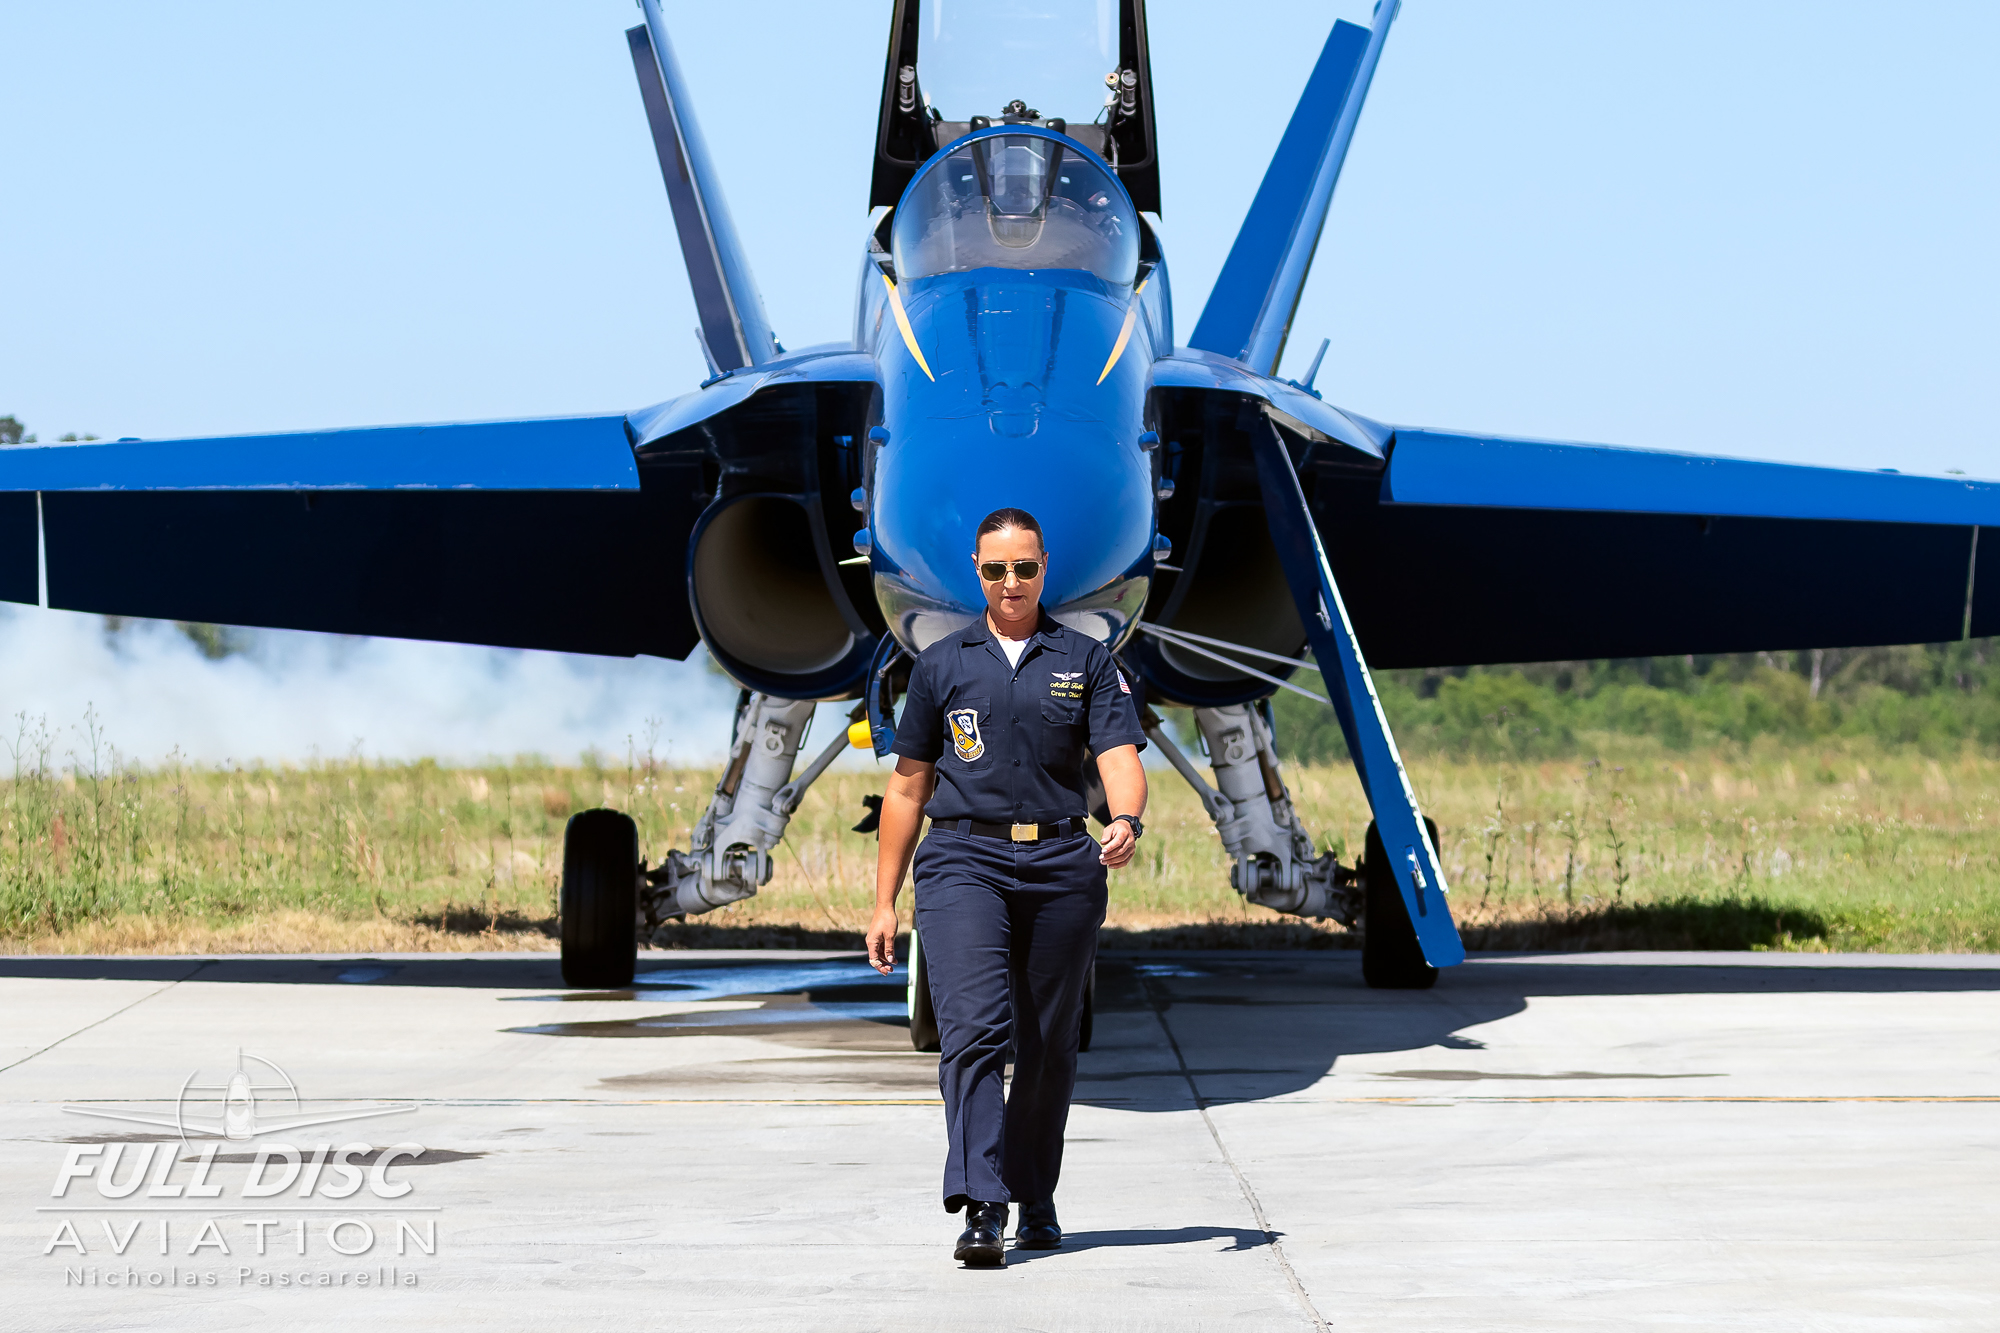 usnavyblueangels_nicholaspascarella_fulldiscavation_aviation_airshow.jpg